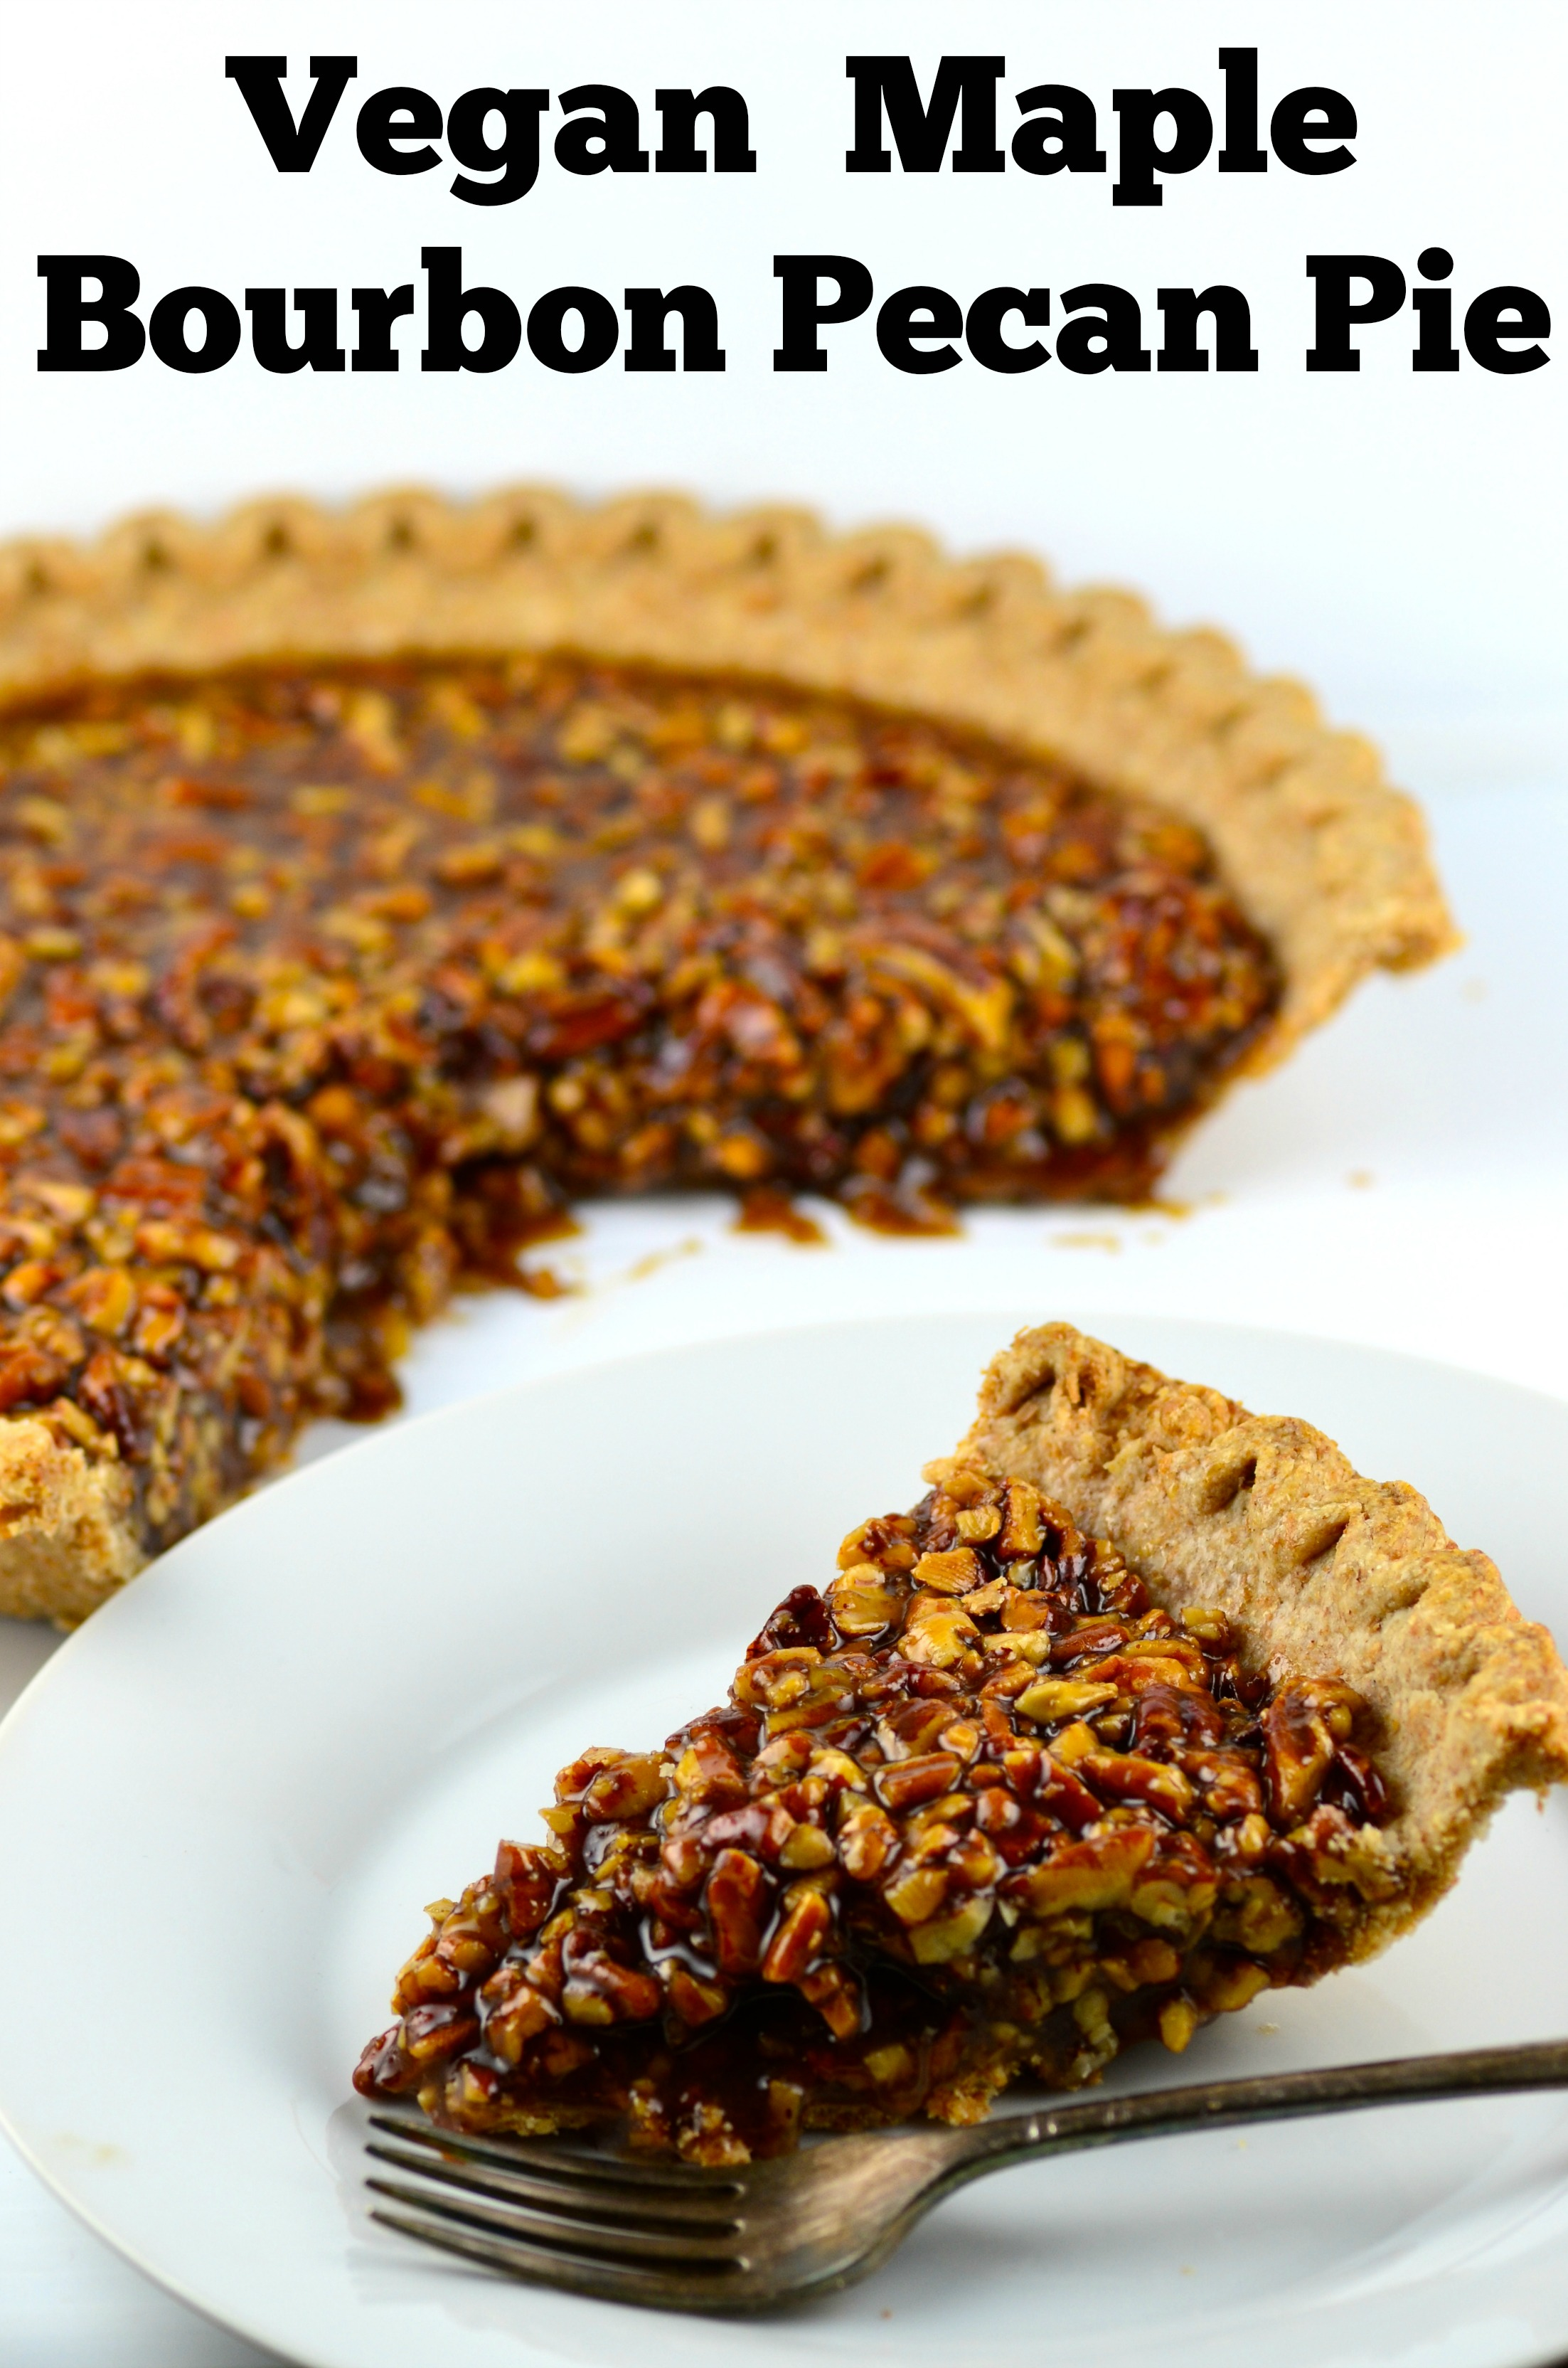 Vegan Bourbon Pecan Pie - Probably the most expensive pie we ever made ...